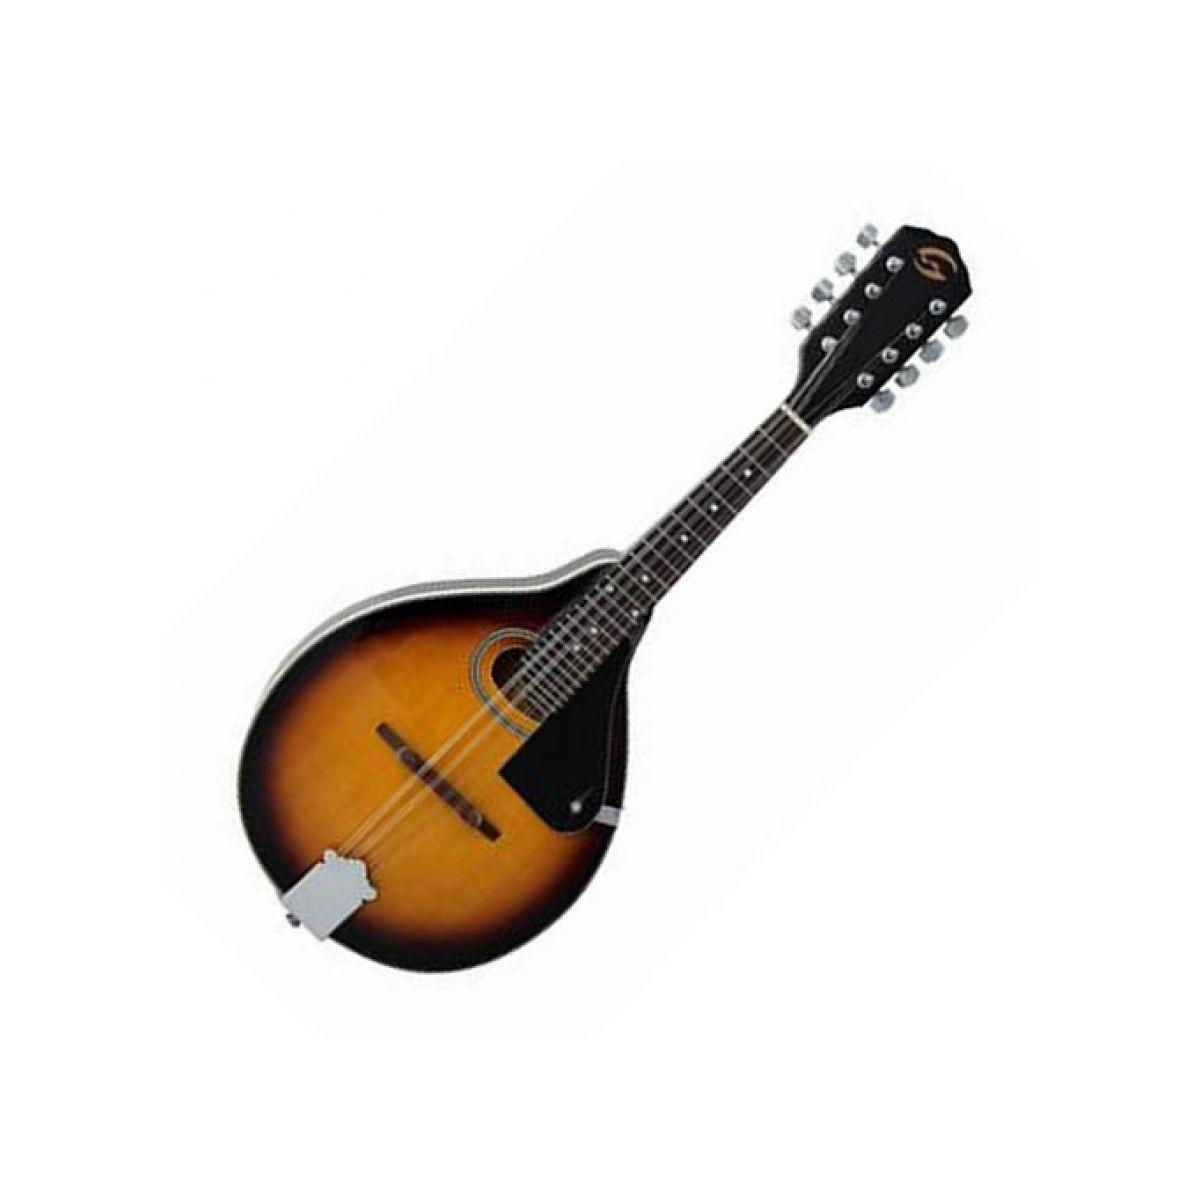 Soundsation mandolino piatto ma-20 vs con borsa